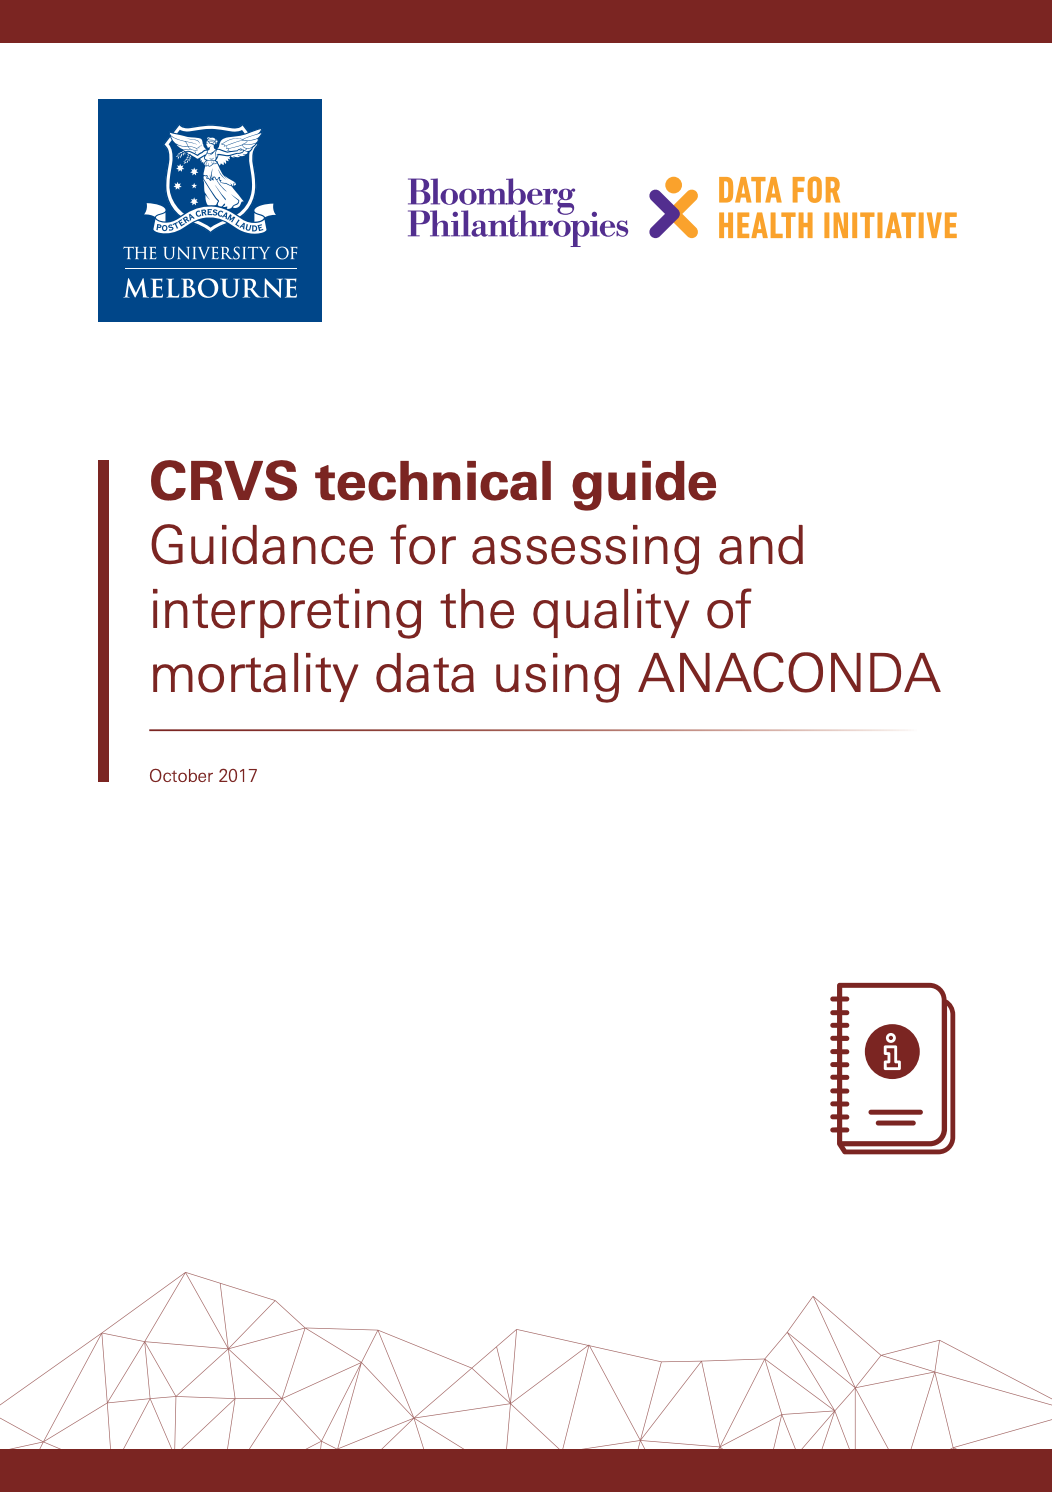 CRVS technical guide - Guidance for assessing and